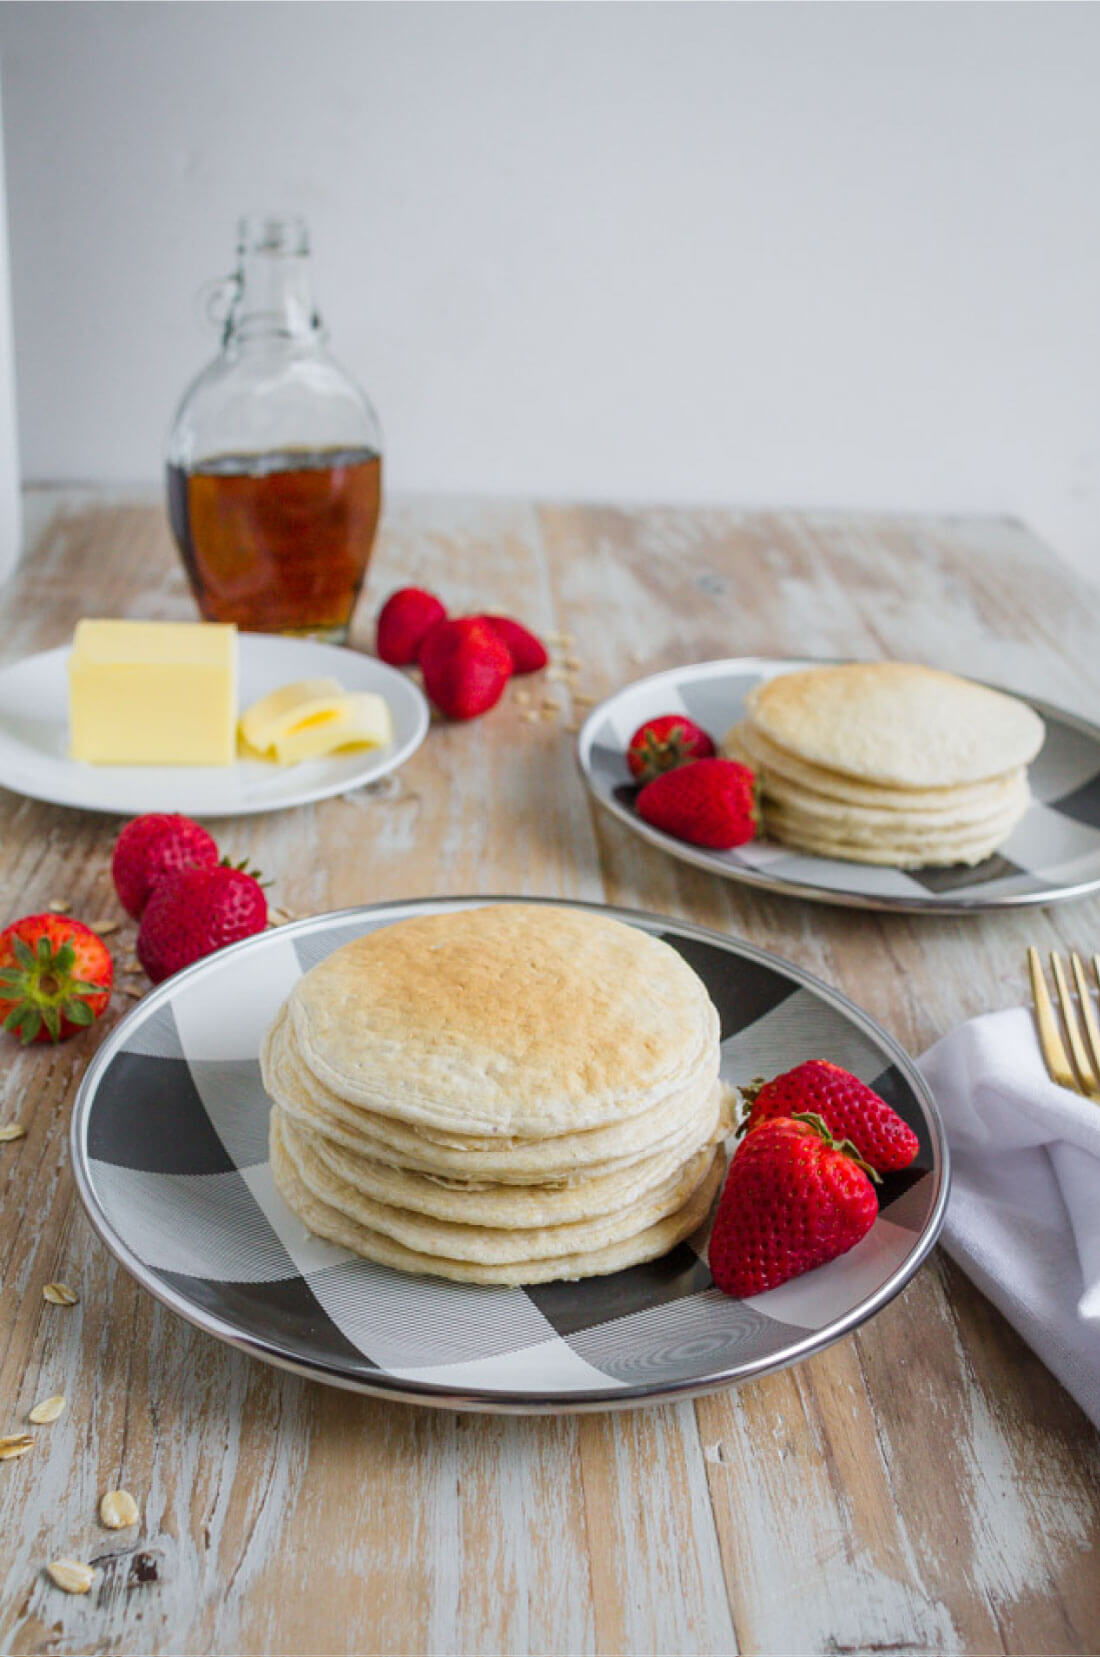 Healthy Pancake Recipe - make these 4 ingredient pancakes in the blender! Set table.